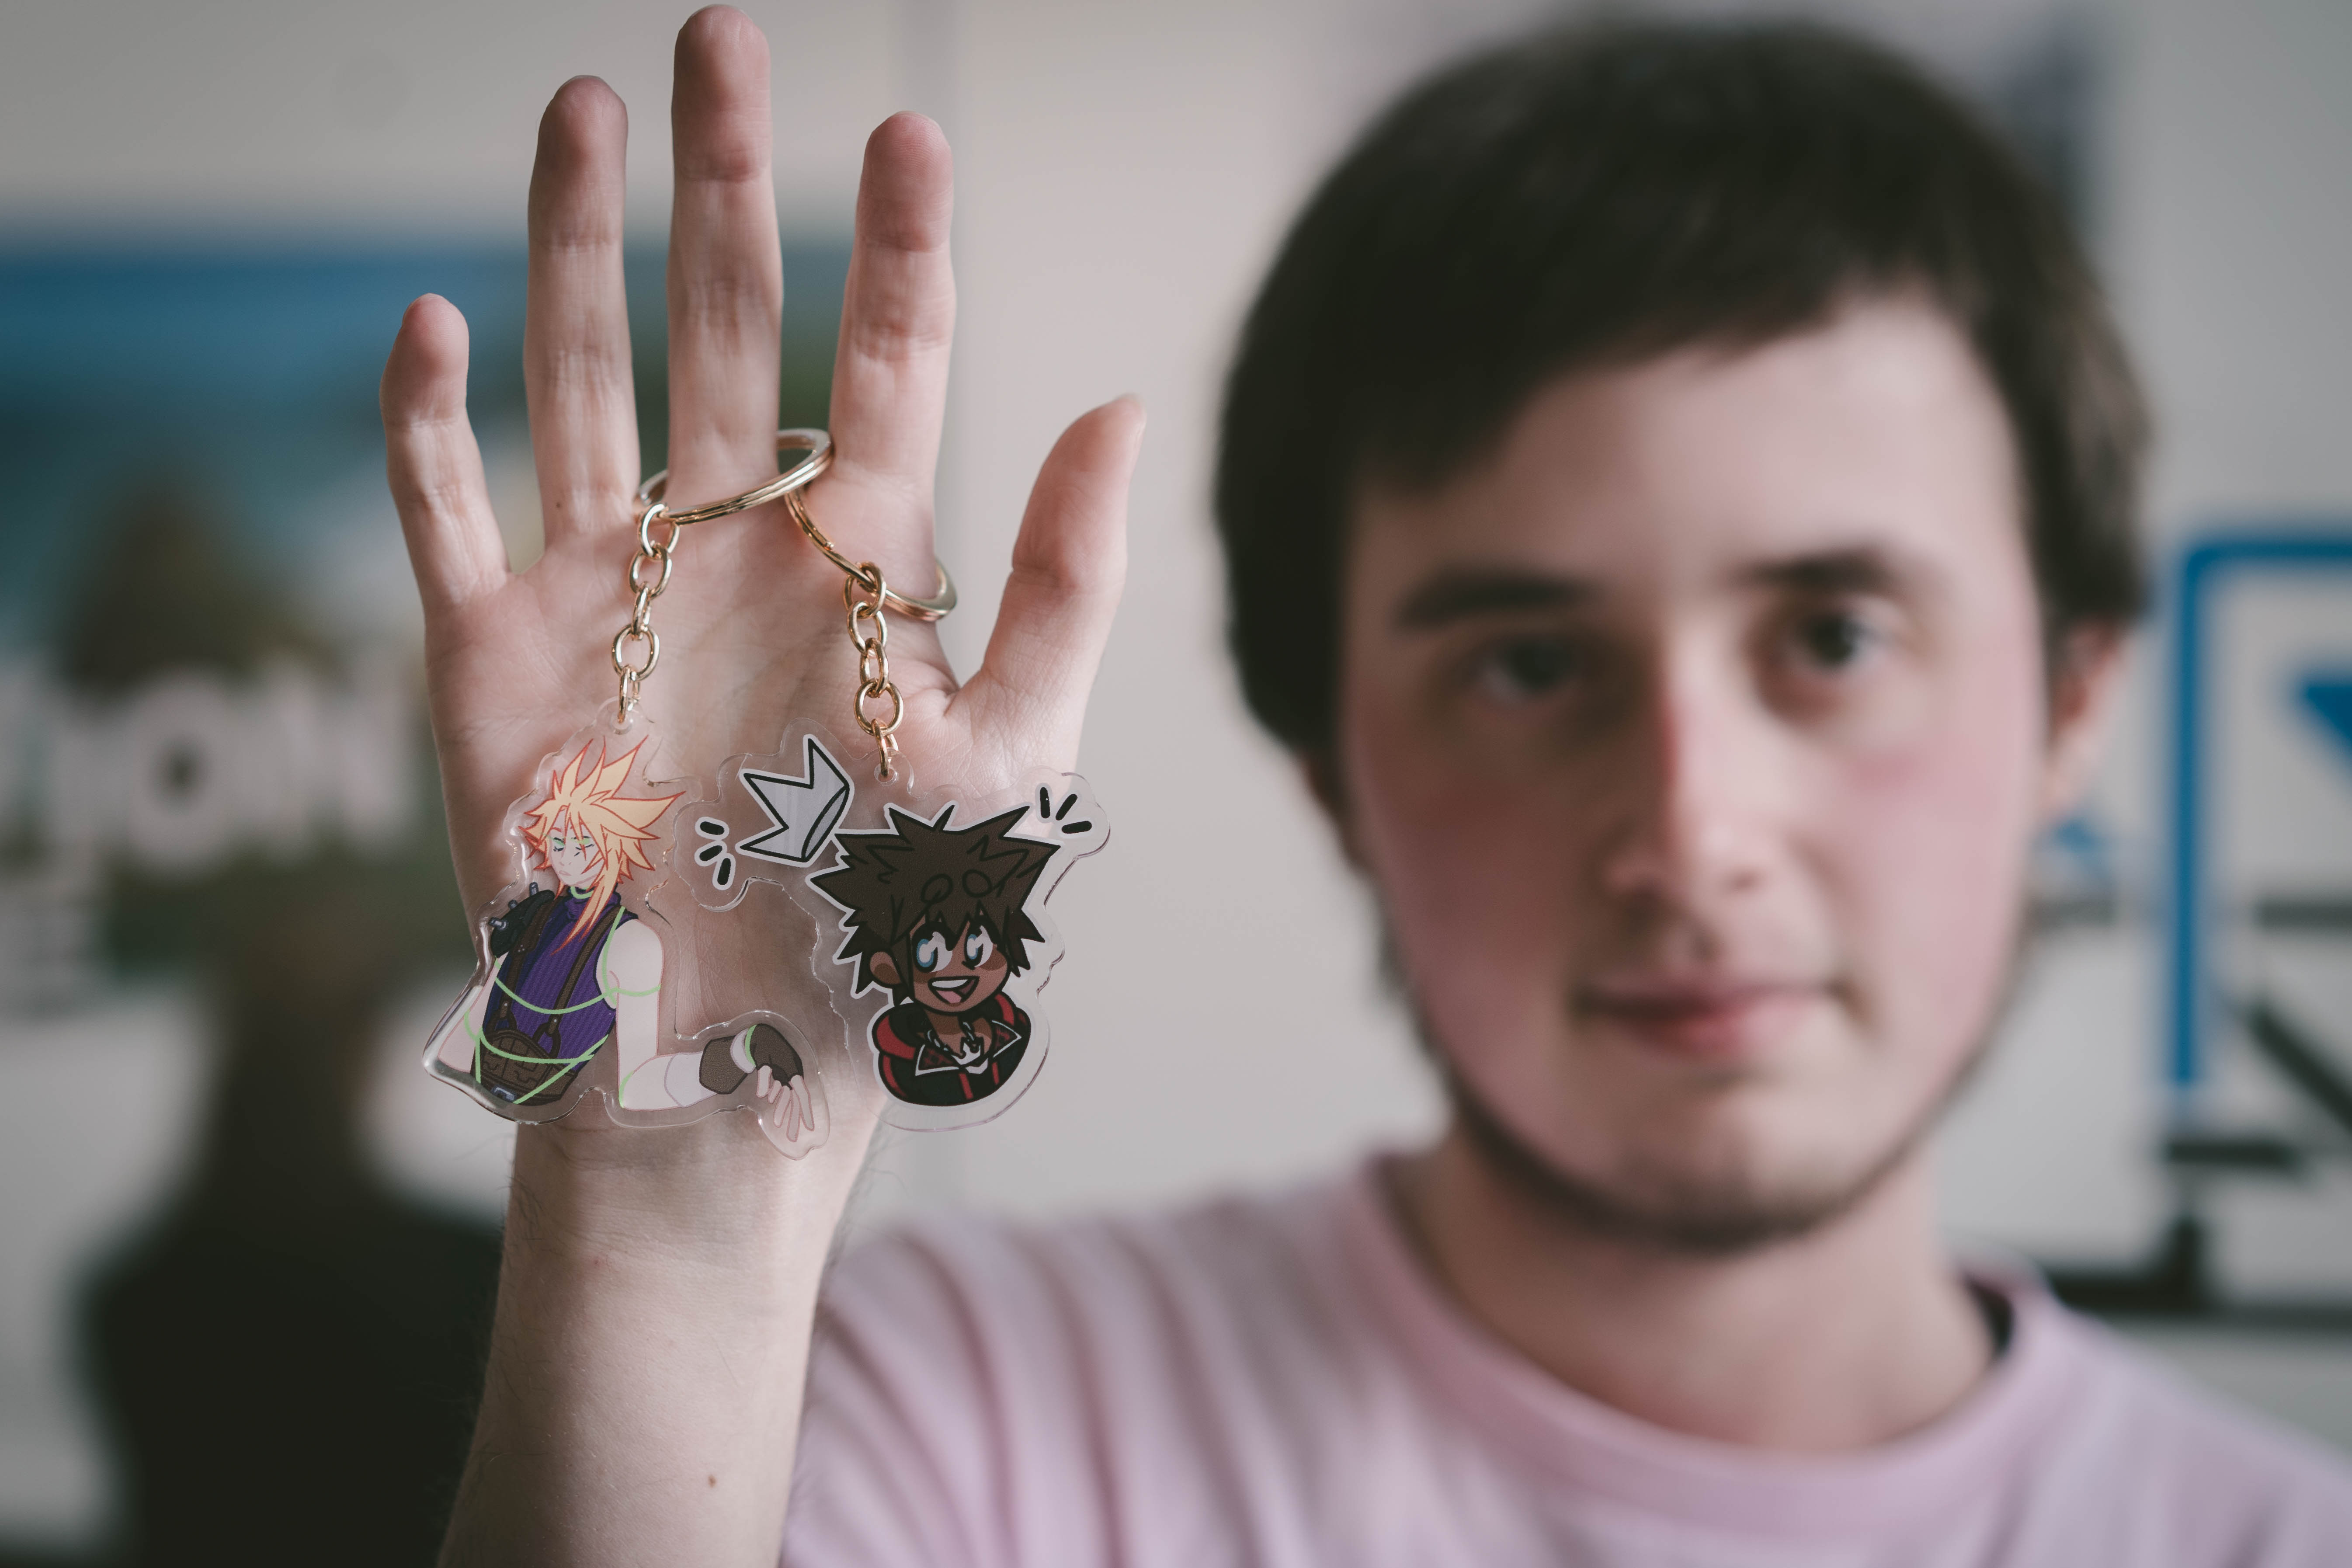 Ashe Black with two of his key rings